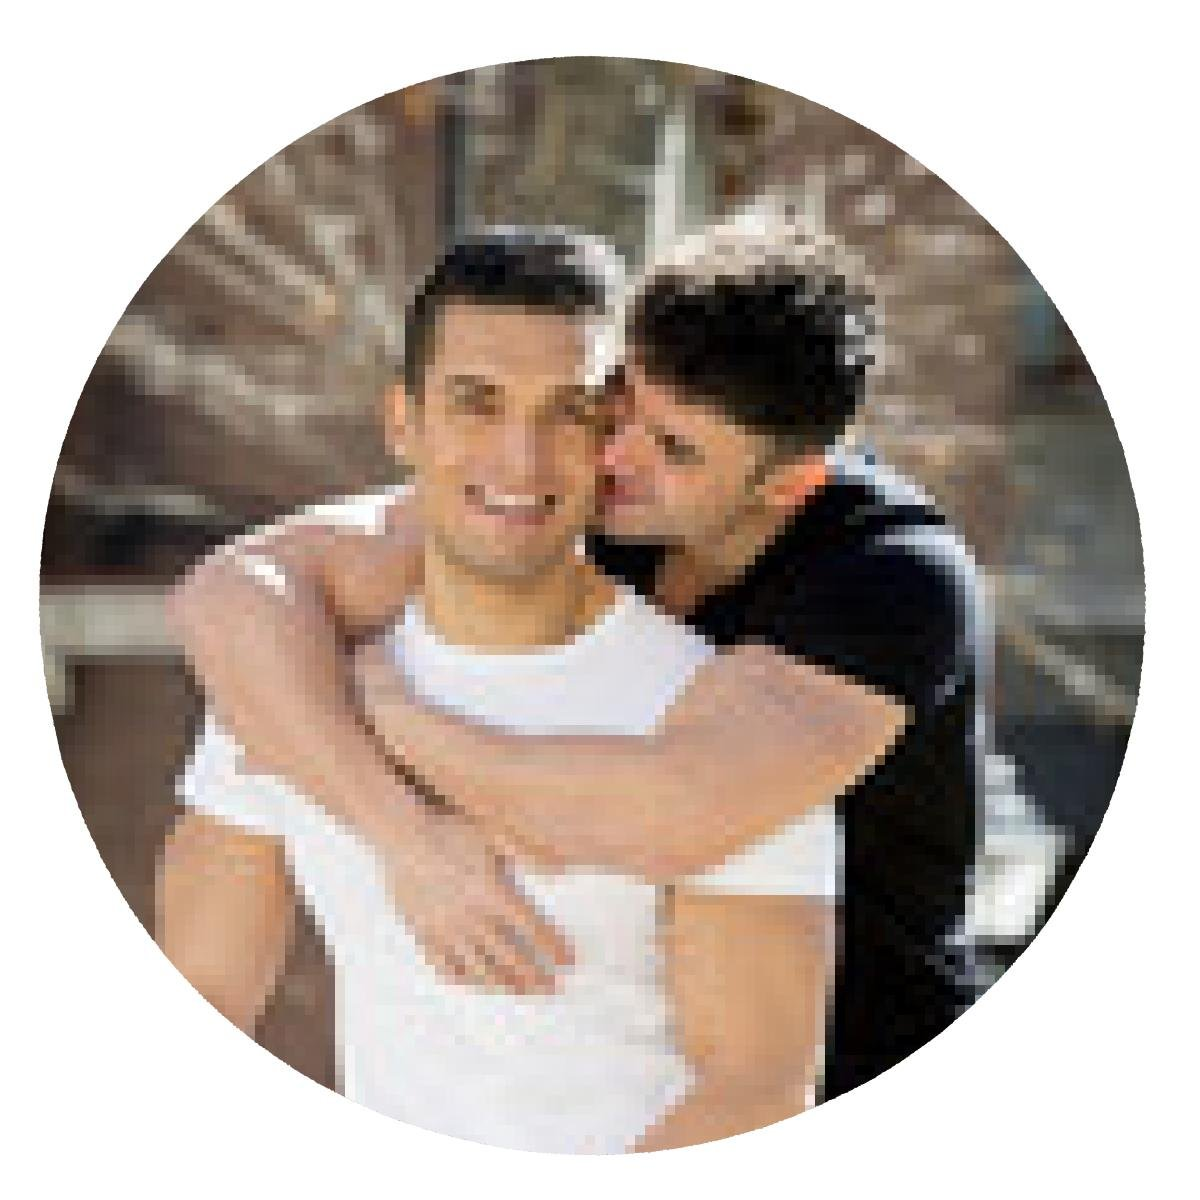 Images of young asin gay men